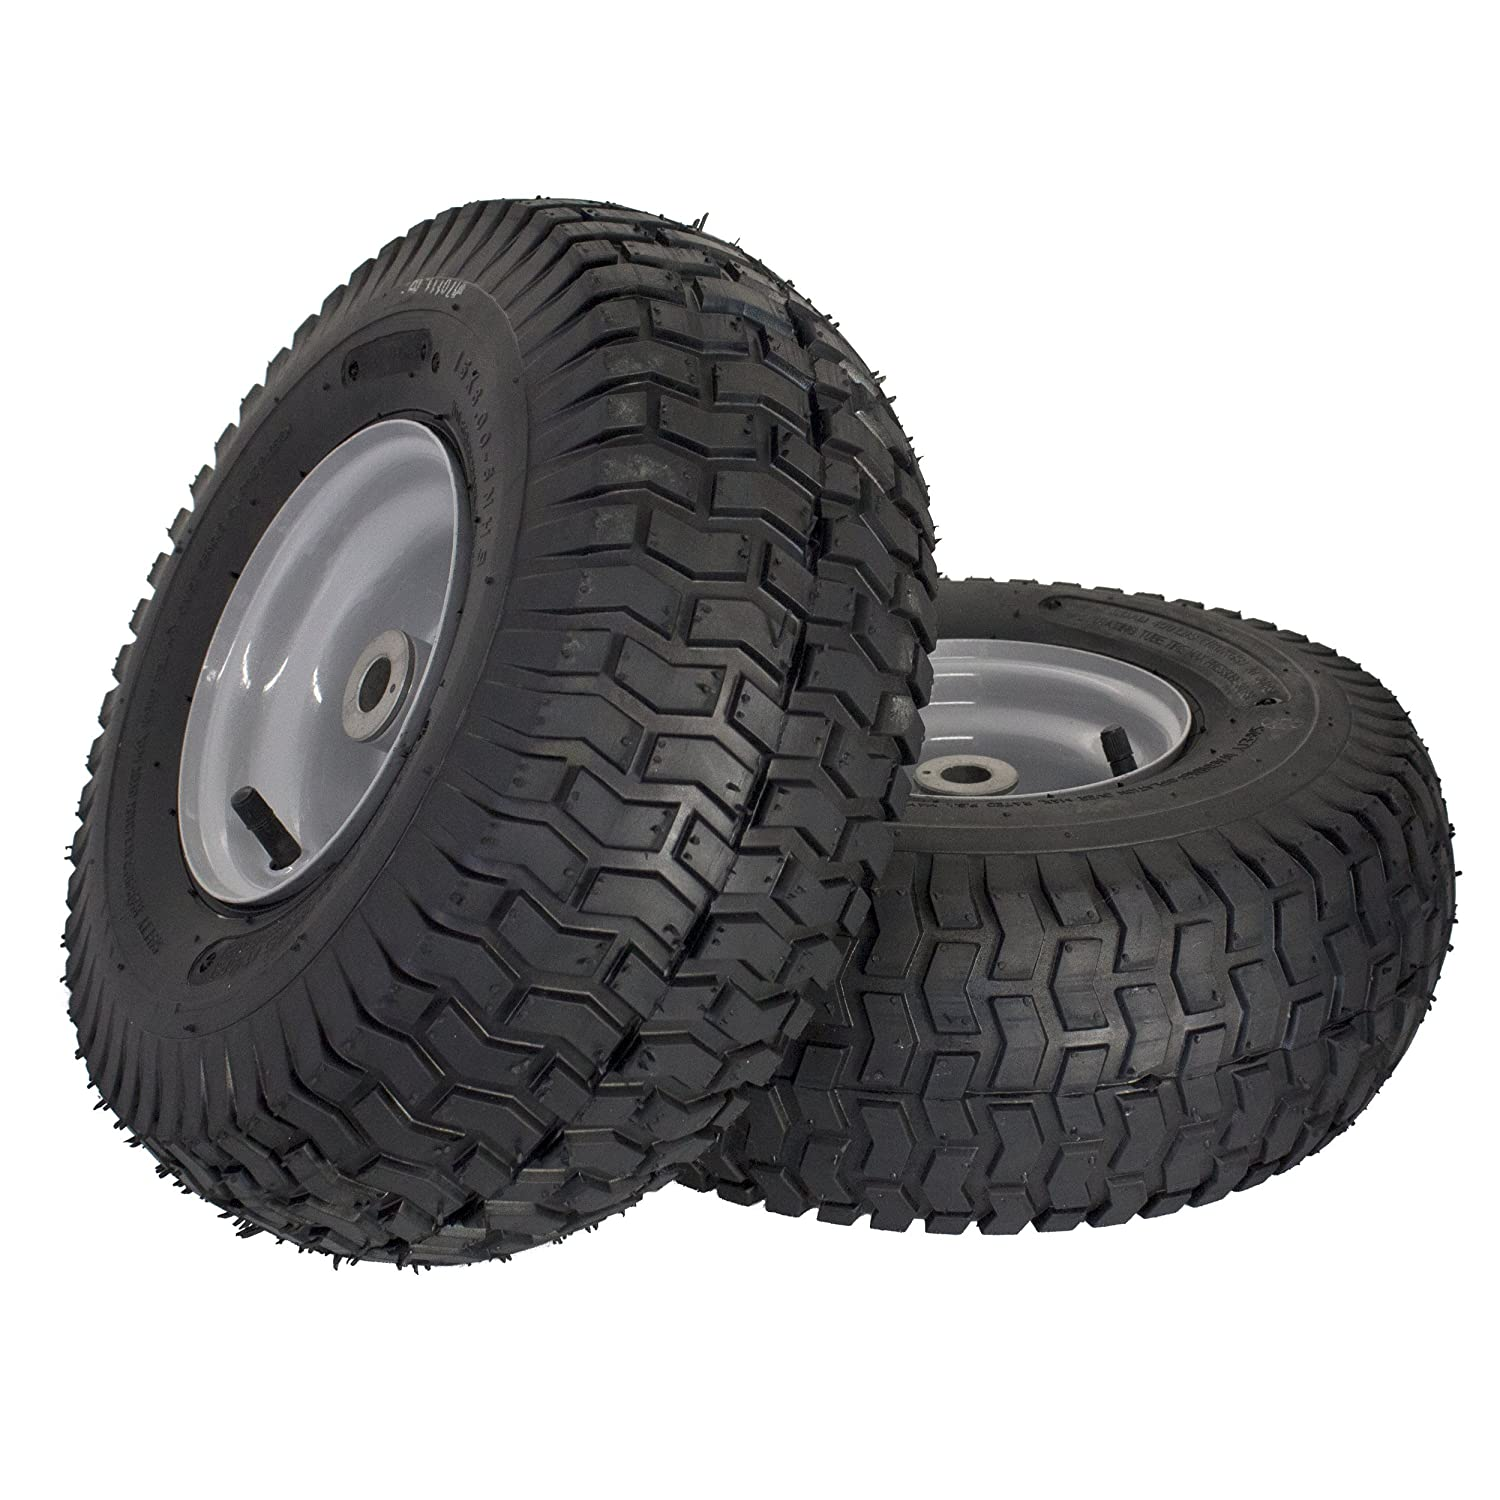 agricultural tractor farm equipment tires automotive